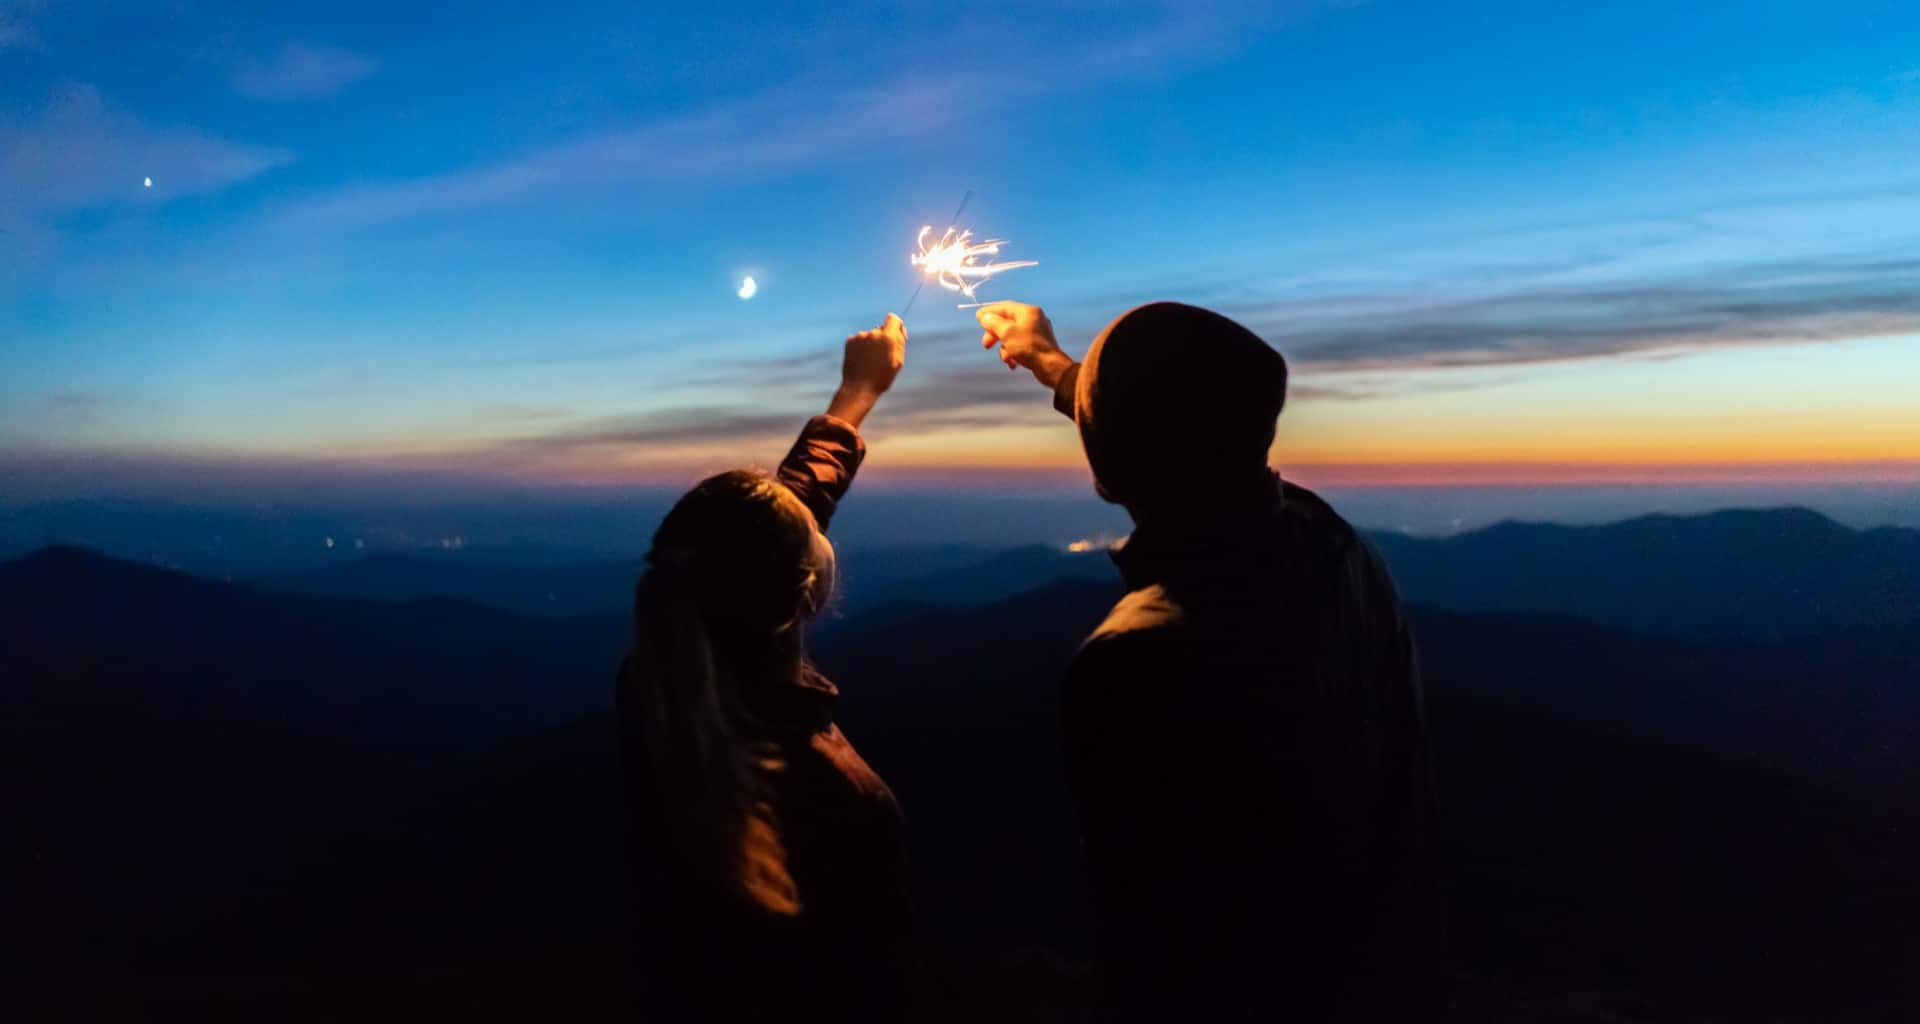 re-sparking a good relationship